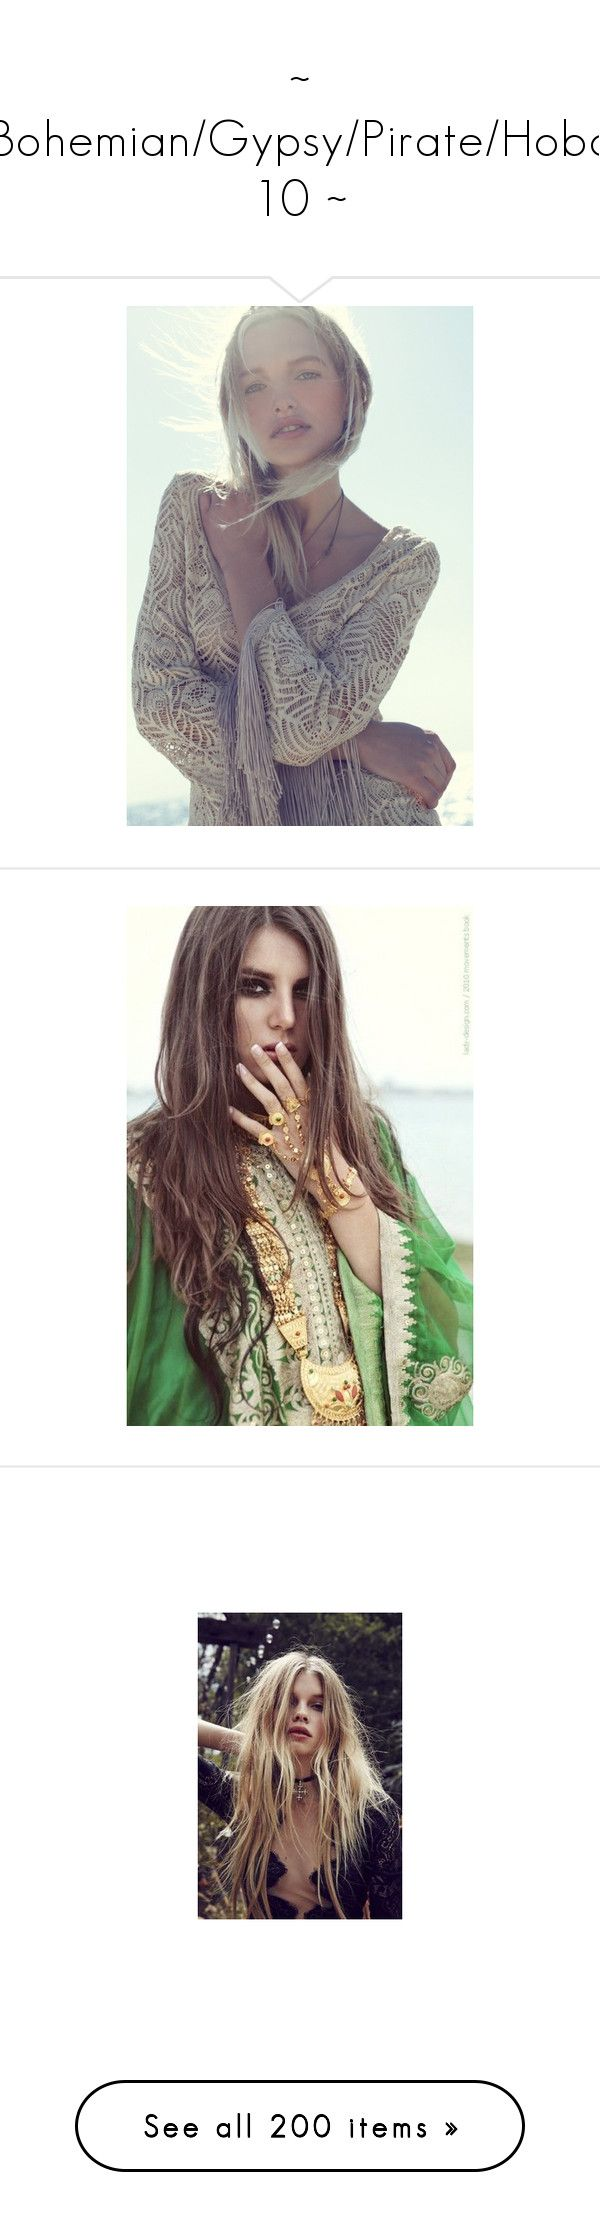 """~ Bohemian/Gypsy/Pirate/Hobo 10 ~"" by romantiquechic ❤ liked on Polyvore featuring backgrounds, people, photos, pictures, accessories, hair accessories, hair, models, bridal hair accessories and bridal crown"